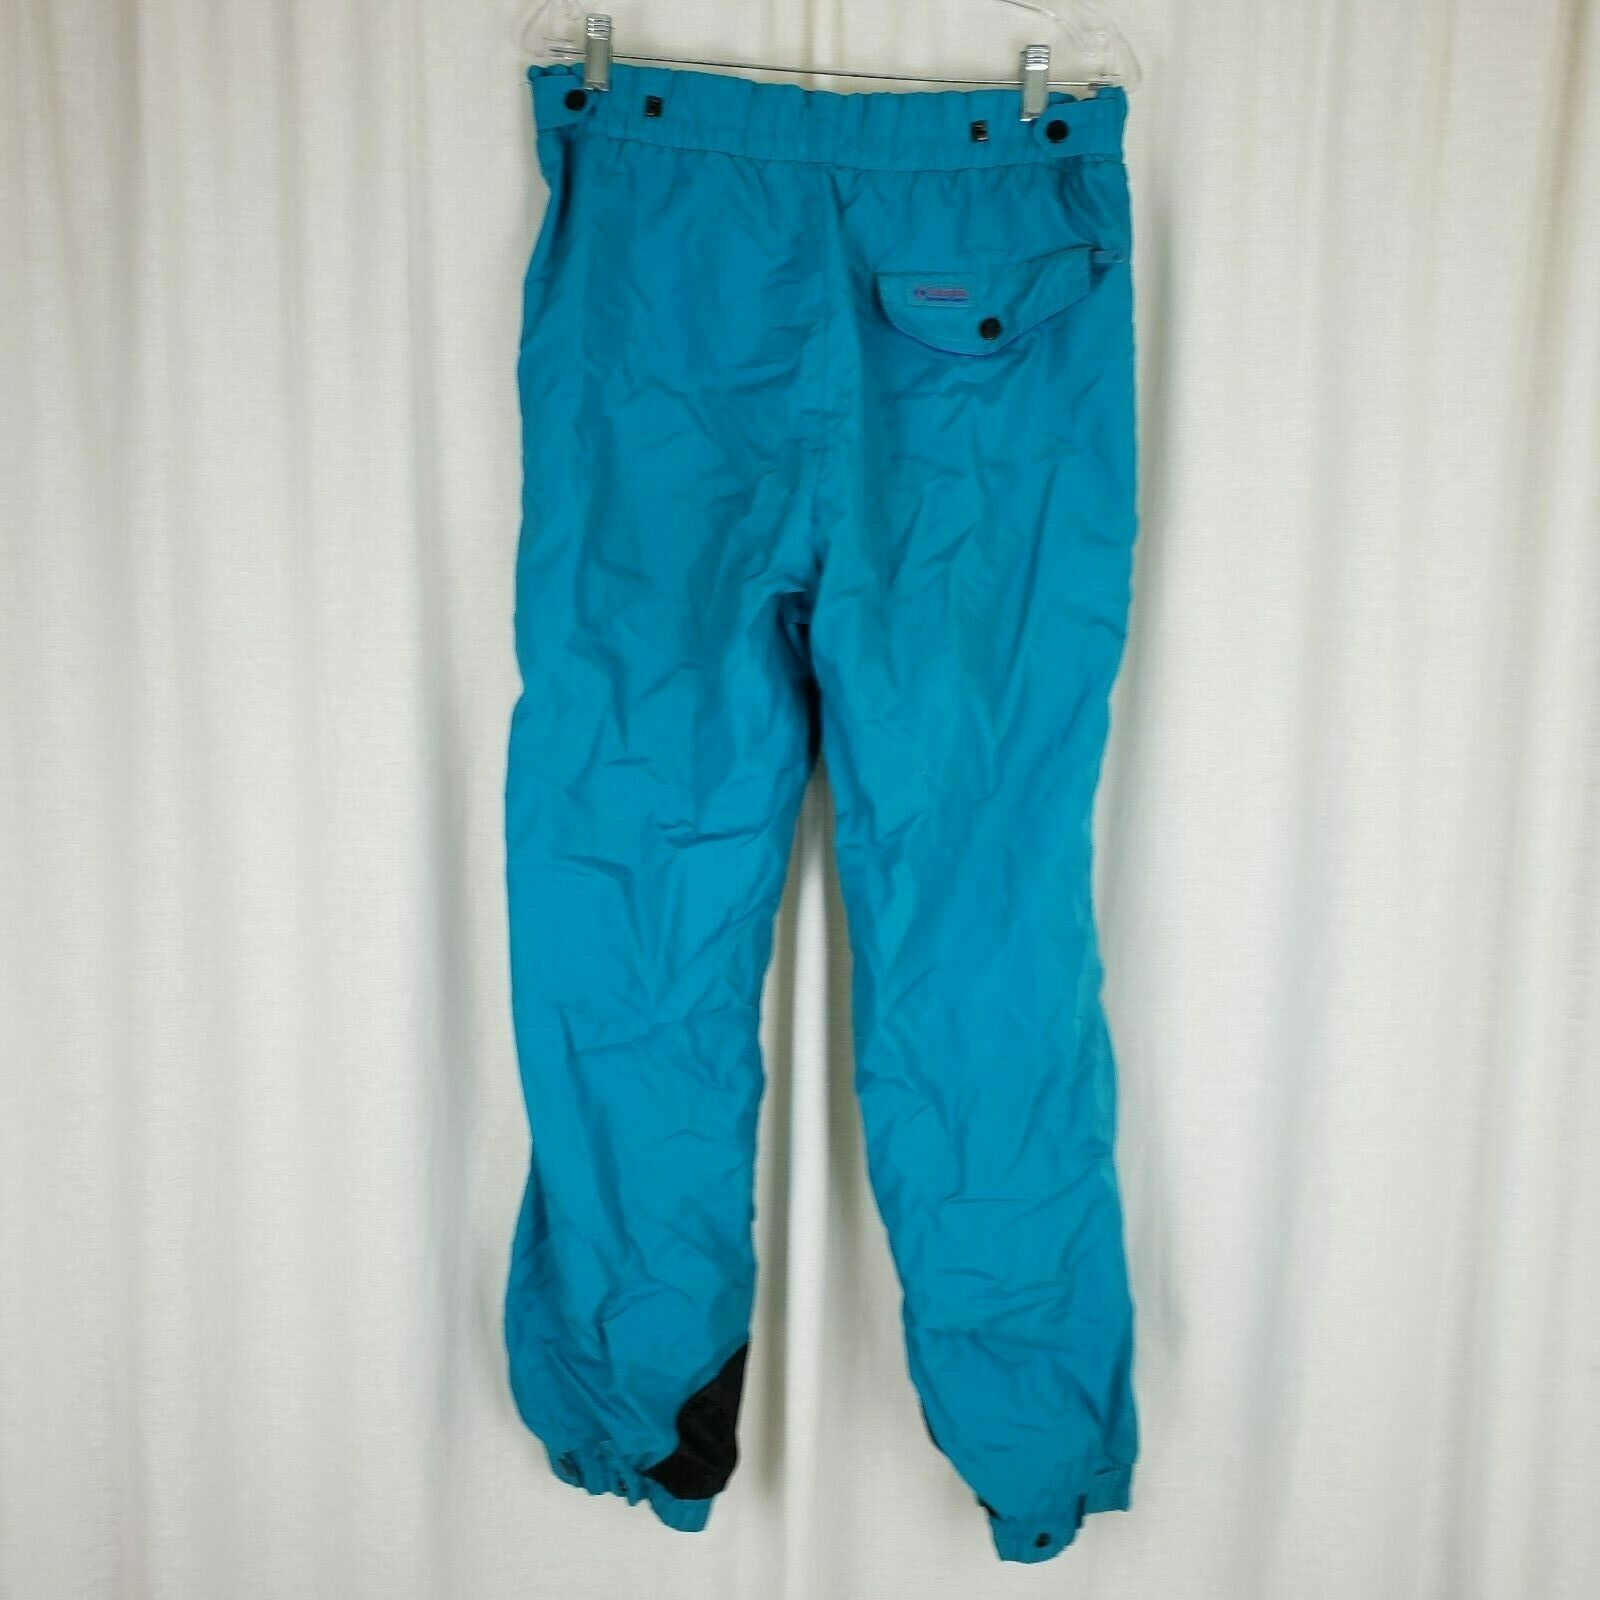 Vintage Columbia Unlined Winter  Ski Snowboard Rain Running Pants Womens M bluee  low price